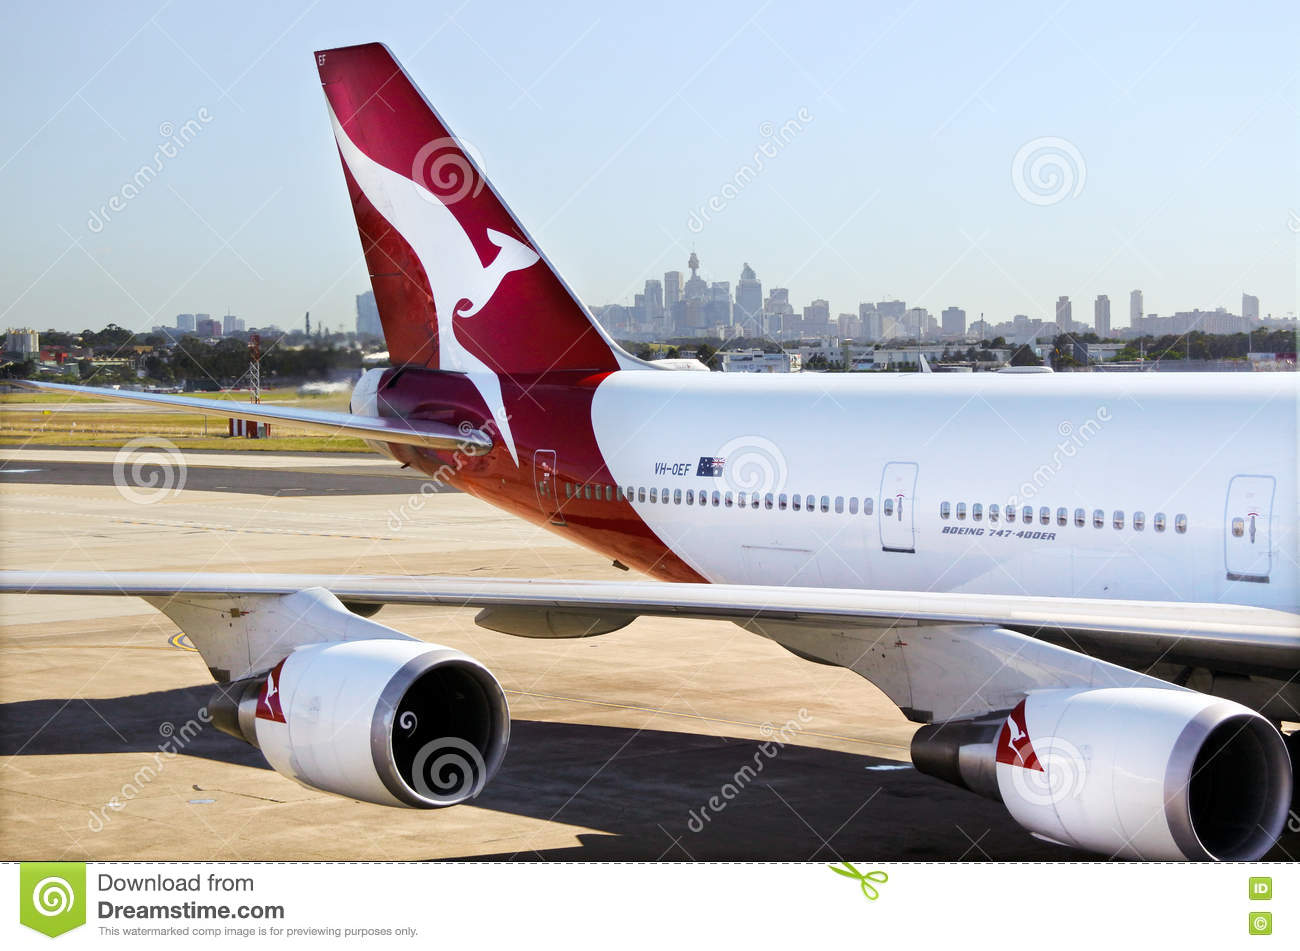 Qantas Airways Jet Plane At Sydney Airport Sydney, Australia